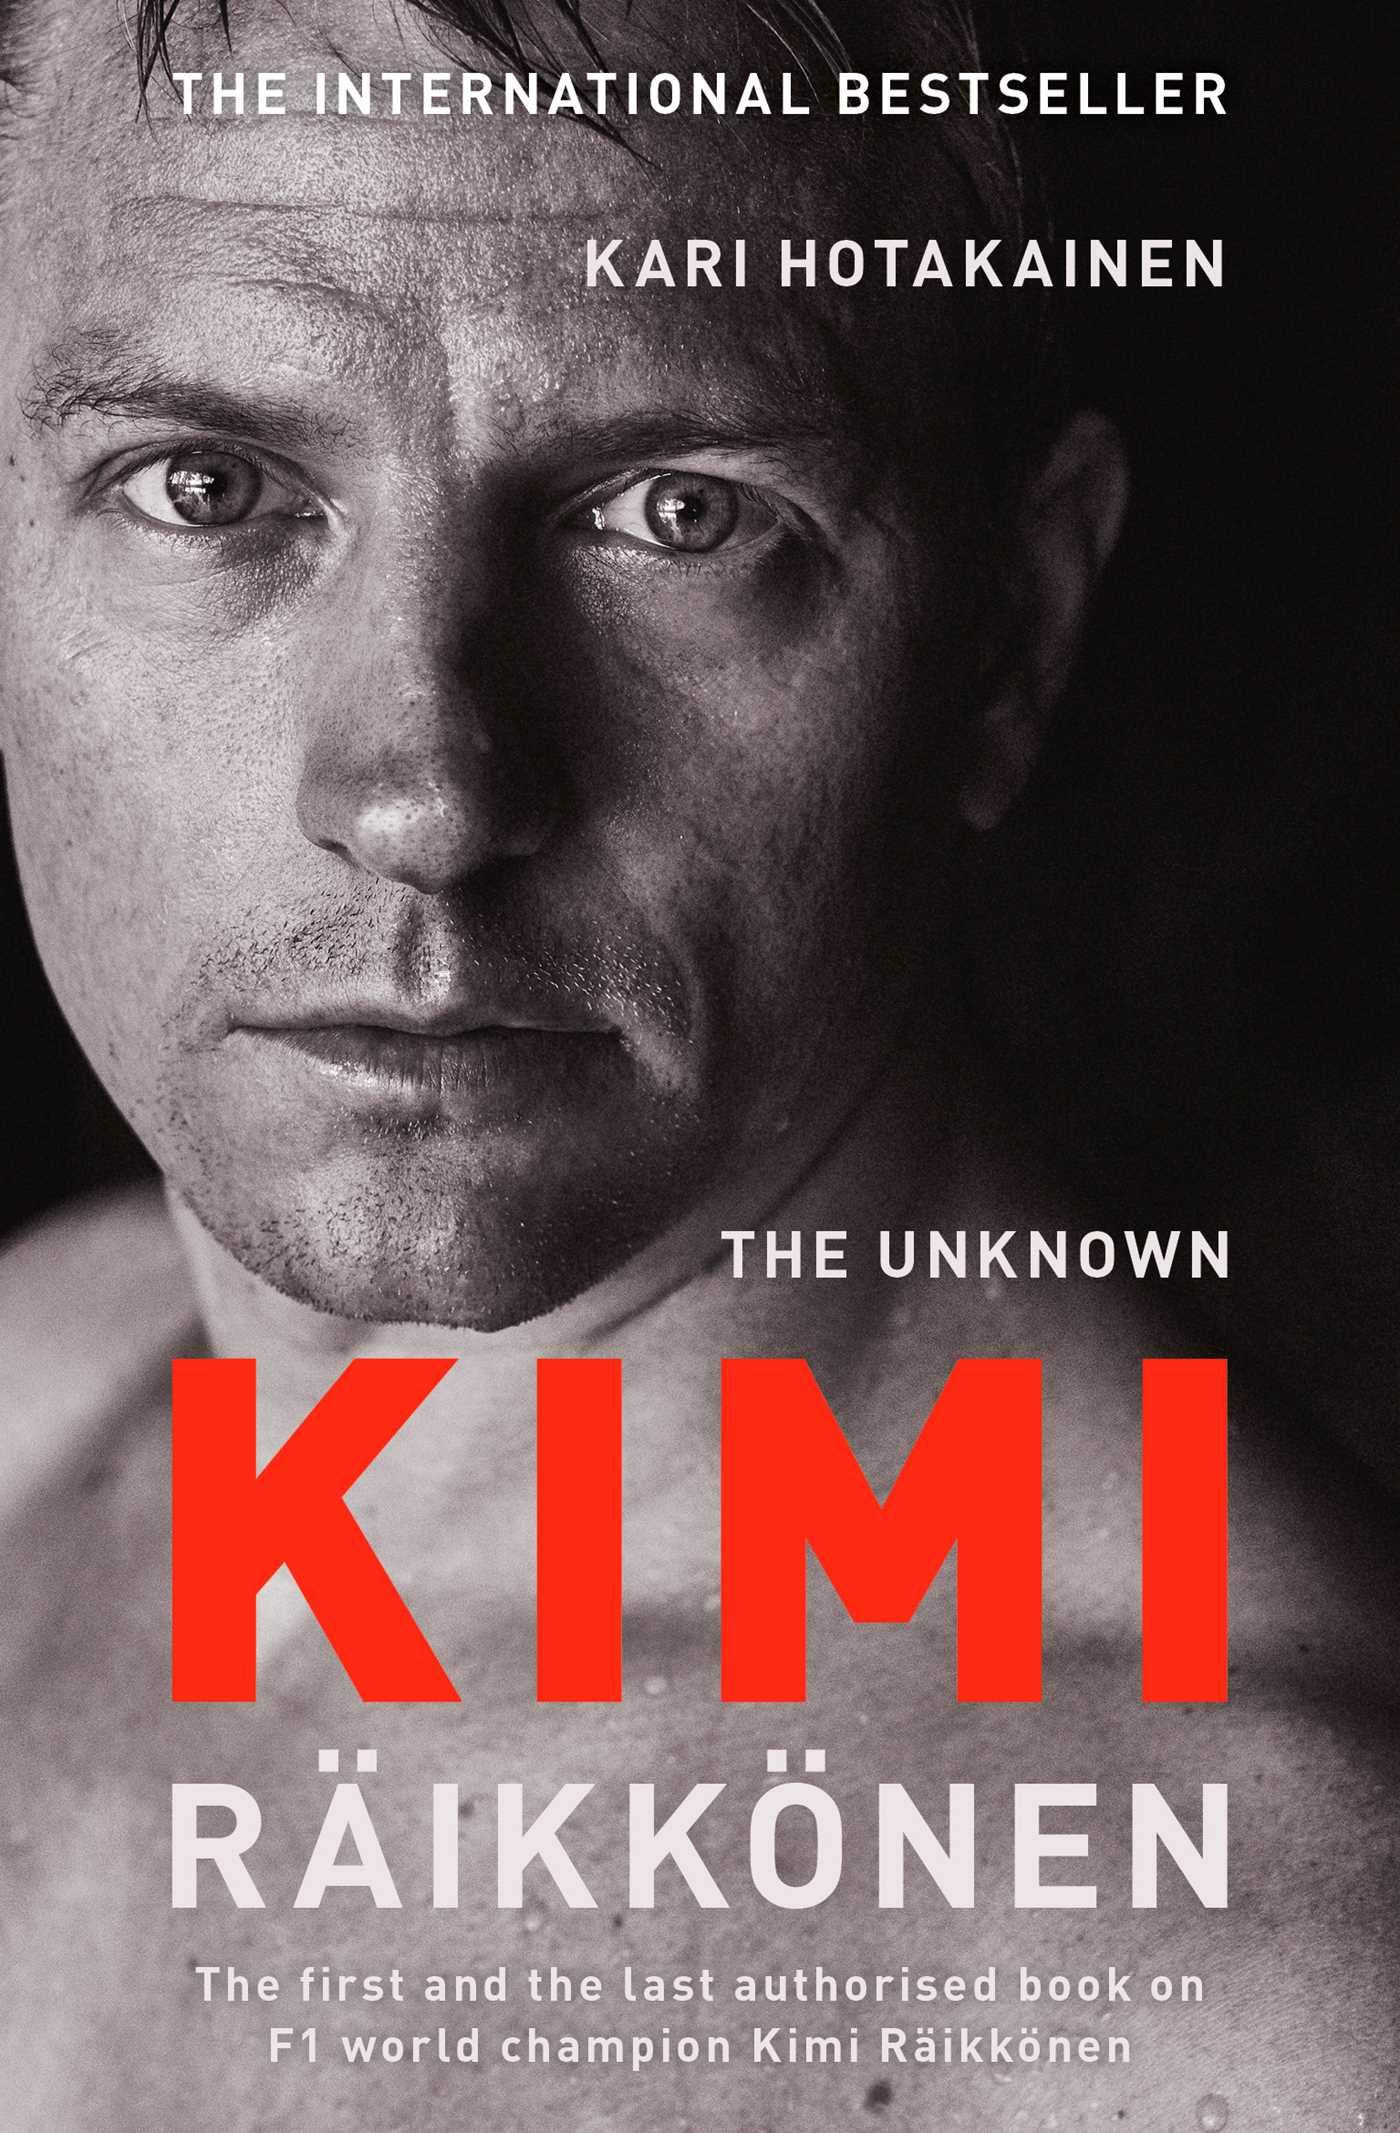 The Unknown Kimi Raikkonen por Kari Hotakainen